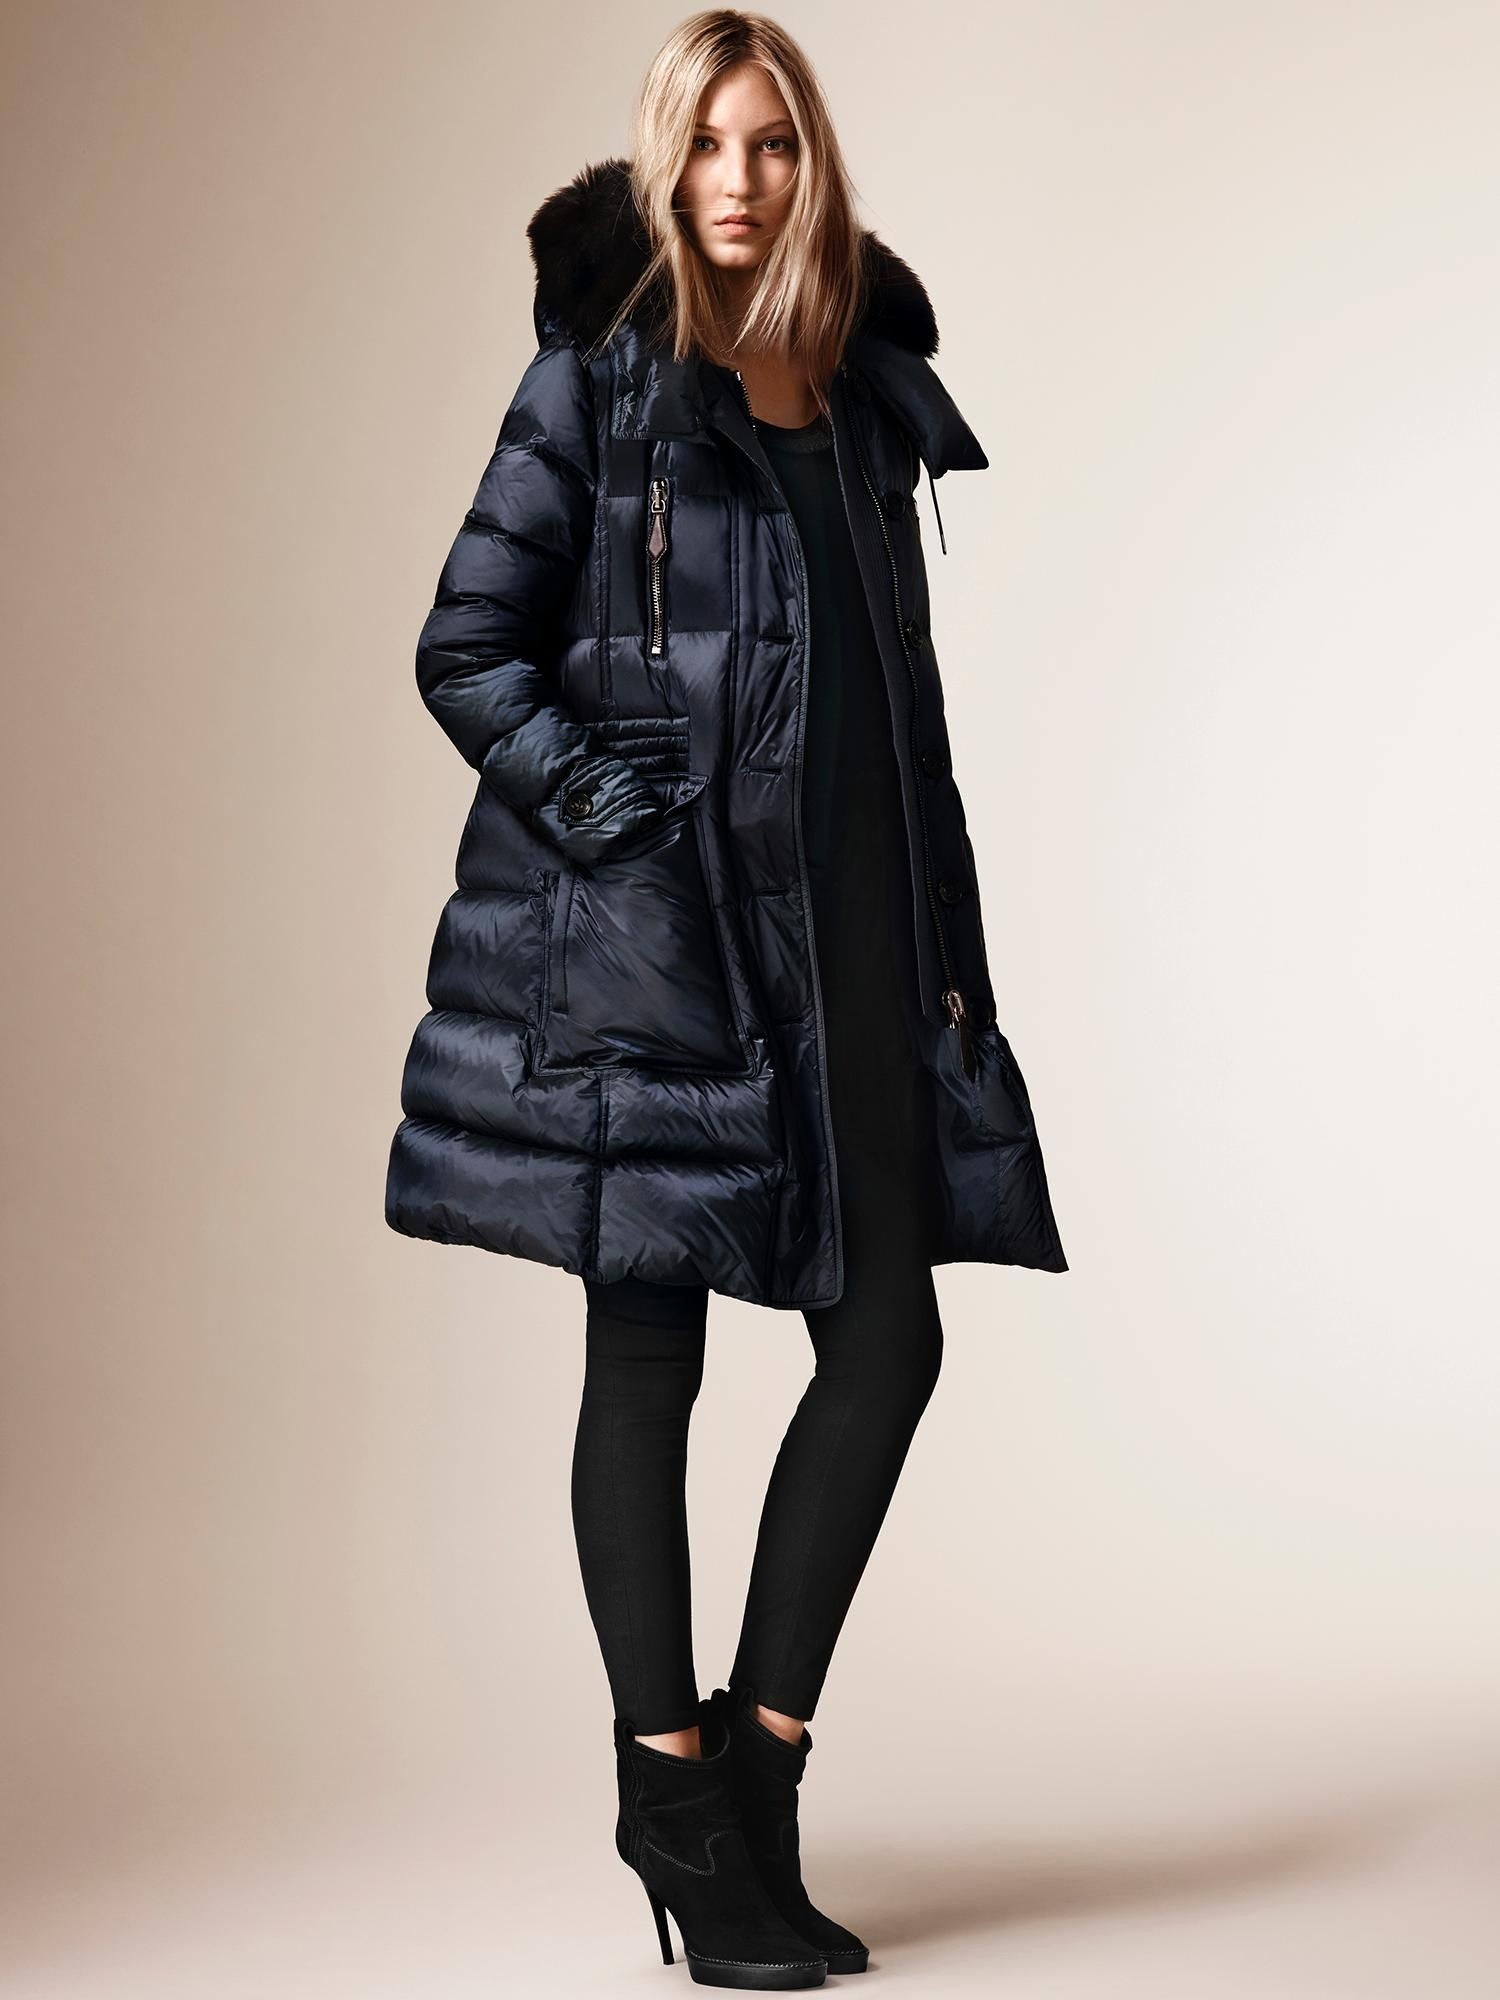 ffe50525eb732f Burberry showerproof down-filled puffer coat with a detachable fox fur trim  on the drawcord hood. Discover the women's outwear collection at  Burberry.com